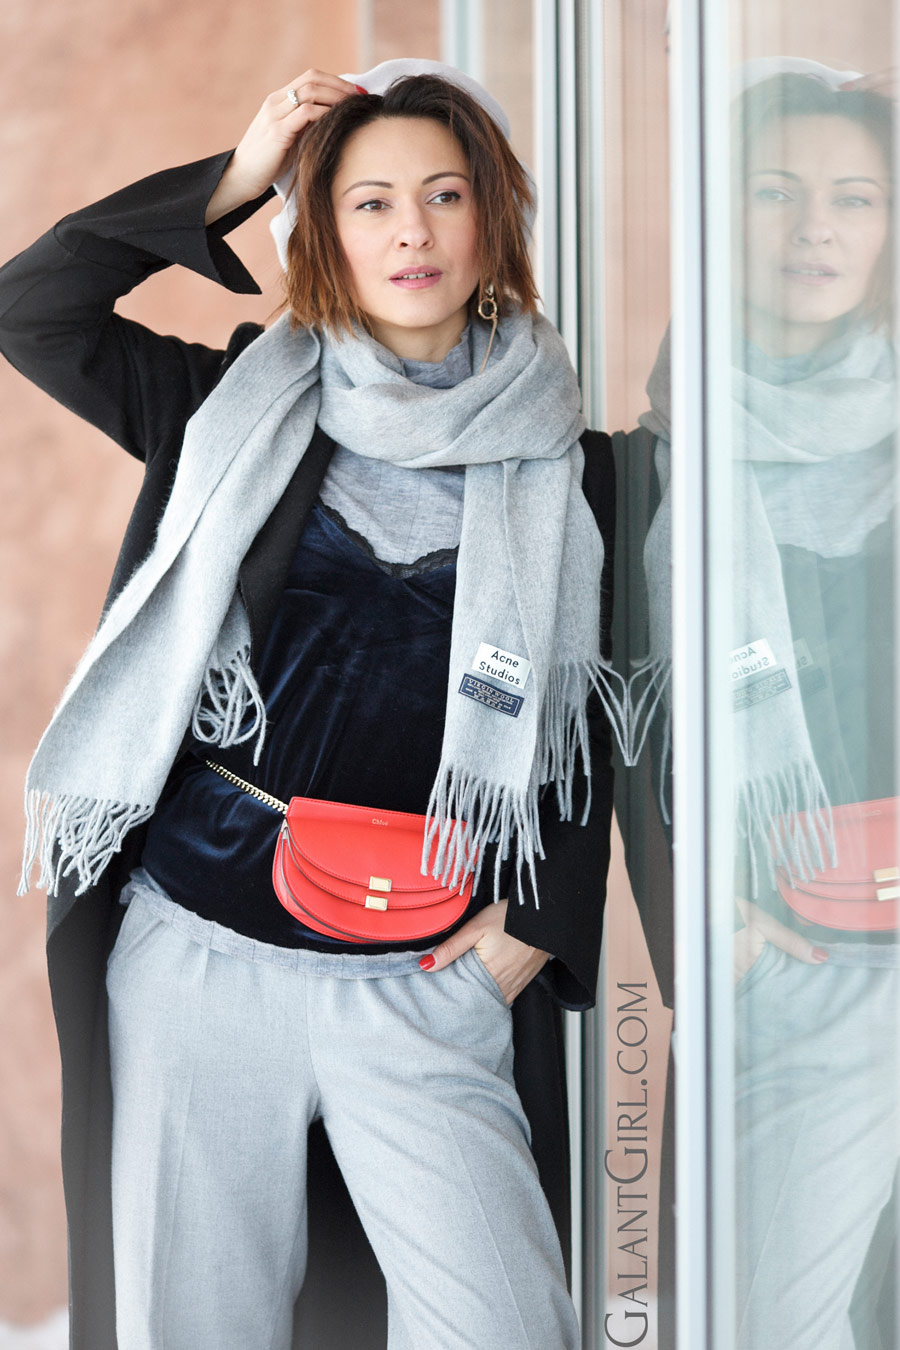 chloe georgia bag, belt bag outfit, acne studios scarf, winter outfit ideas,